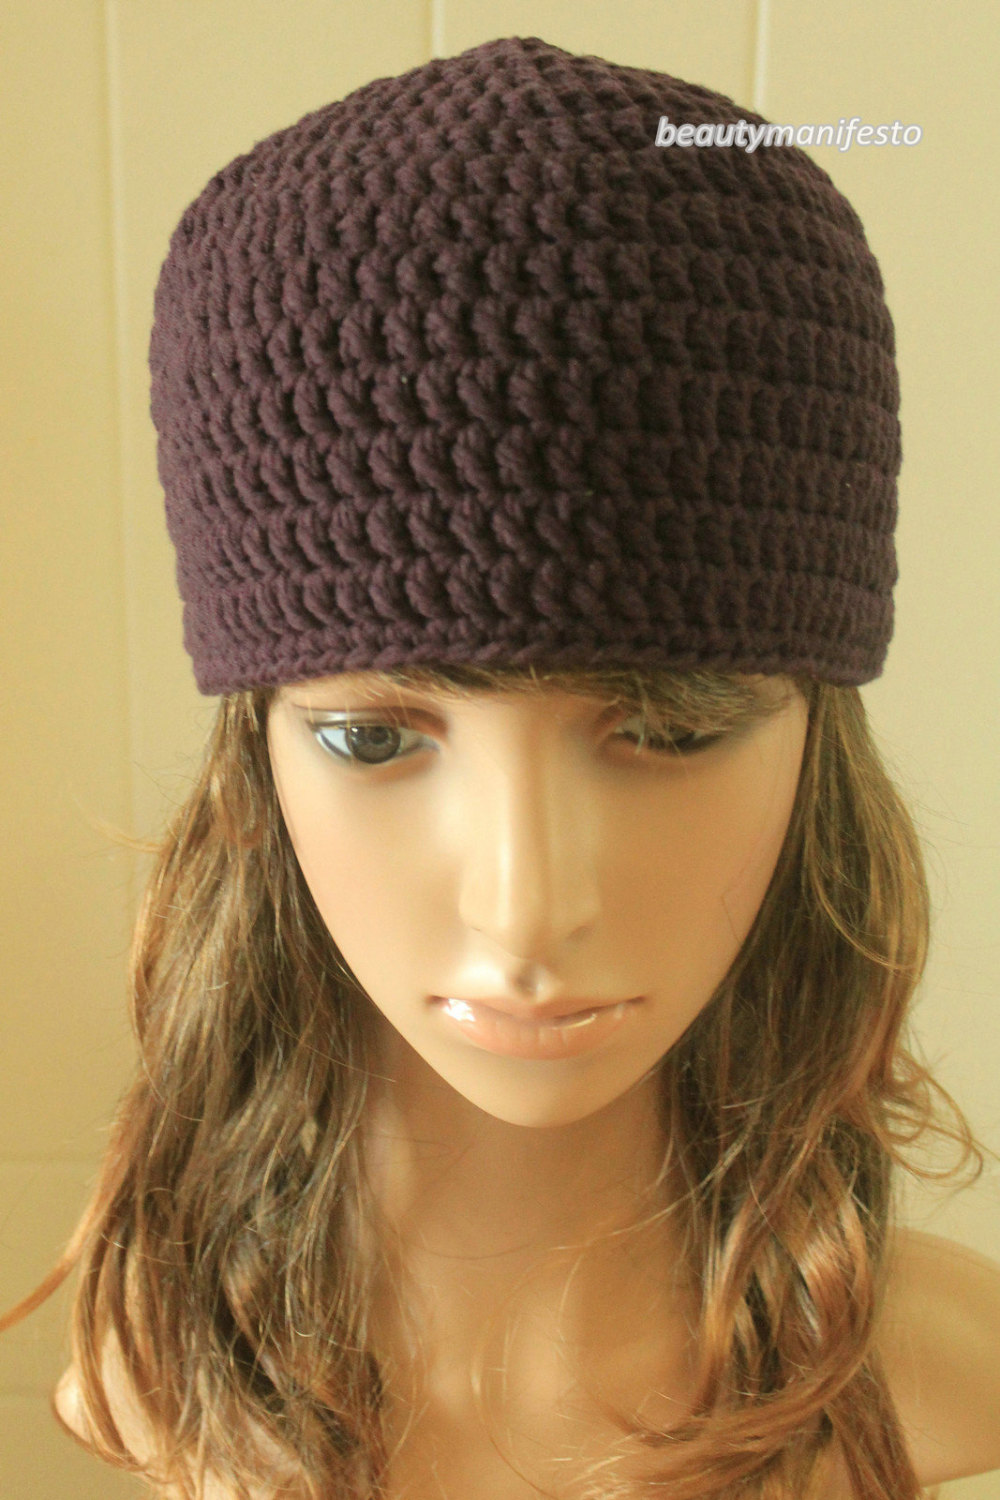 Sale slouchy chunky colorful knitted hat in vibrant violet